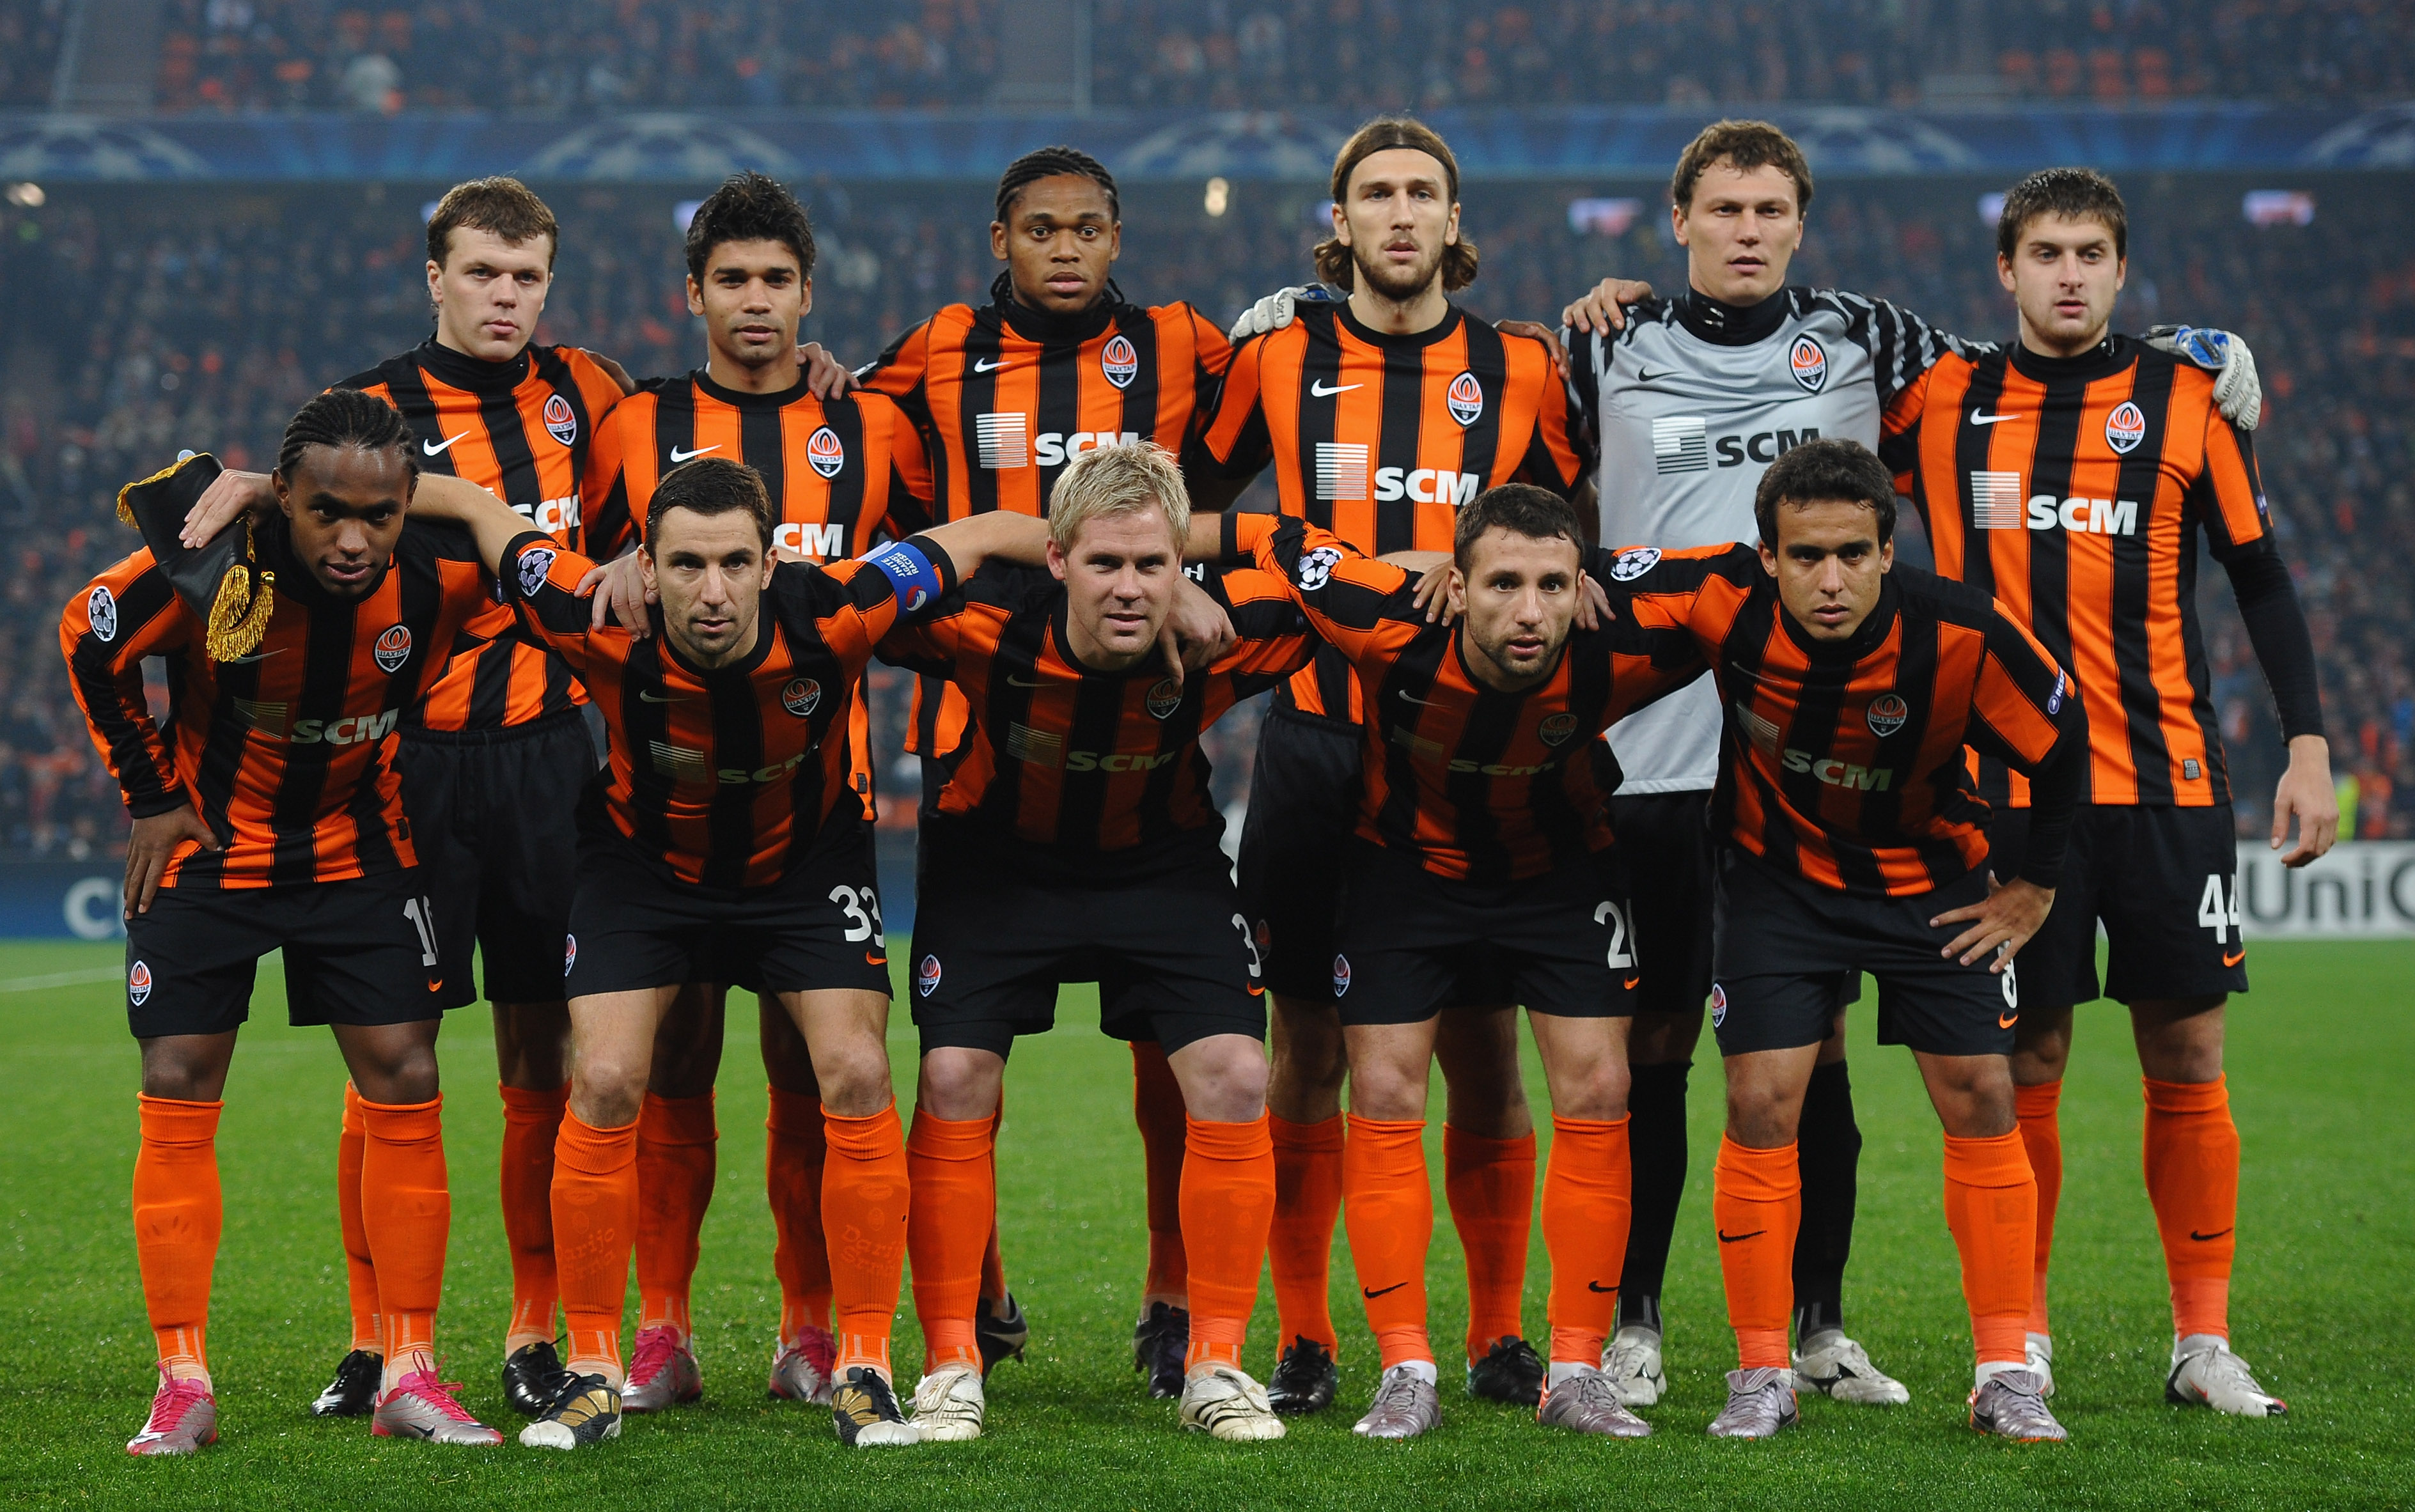 DONETSK, UKRAINE - NOVEMBER 03:  FC Shakhtar Donetsk line up during the Champions League Group H match between FC Shakhtar Donetsk and Arsenal at the Donbass Arena on November 3, 2010 in Donetsk, Ukraine.  (Photo by Laurence Griffiths/Getty Images)